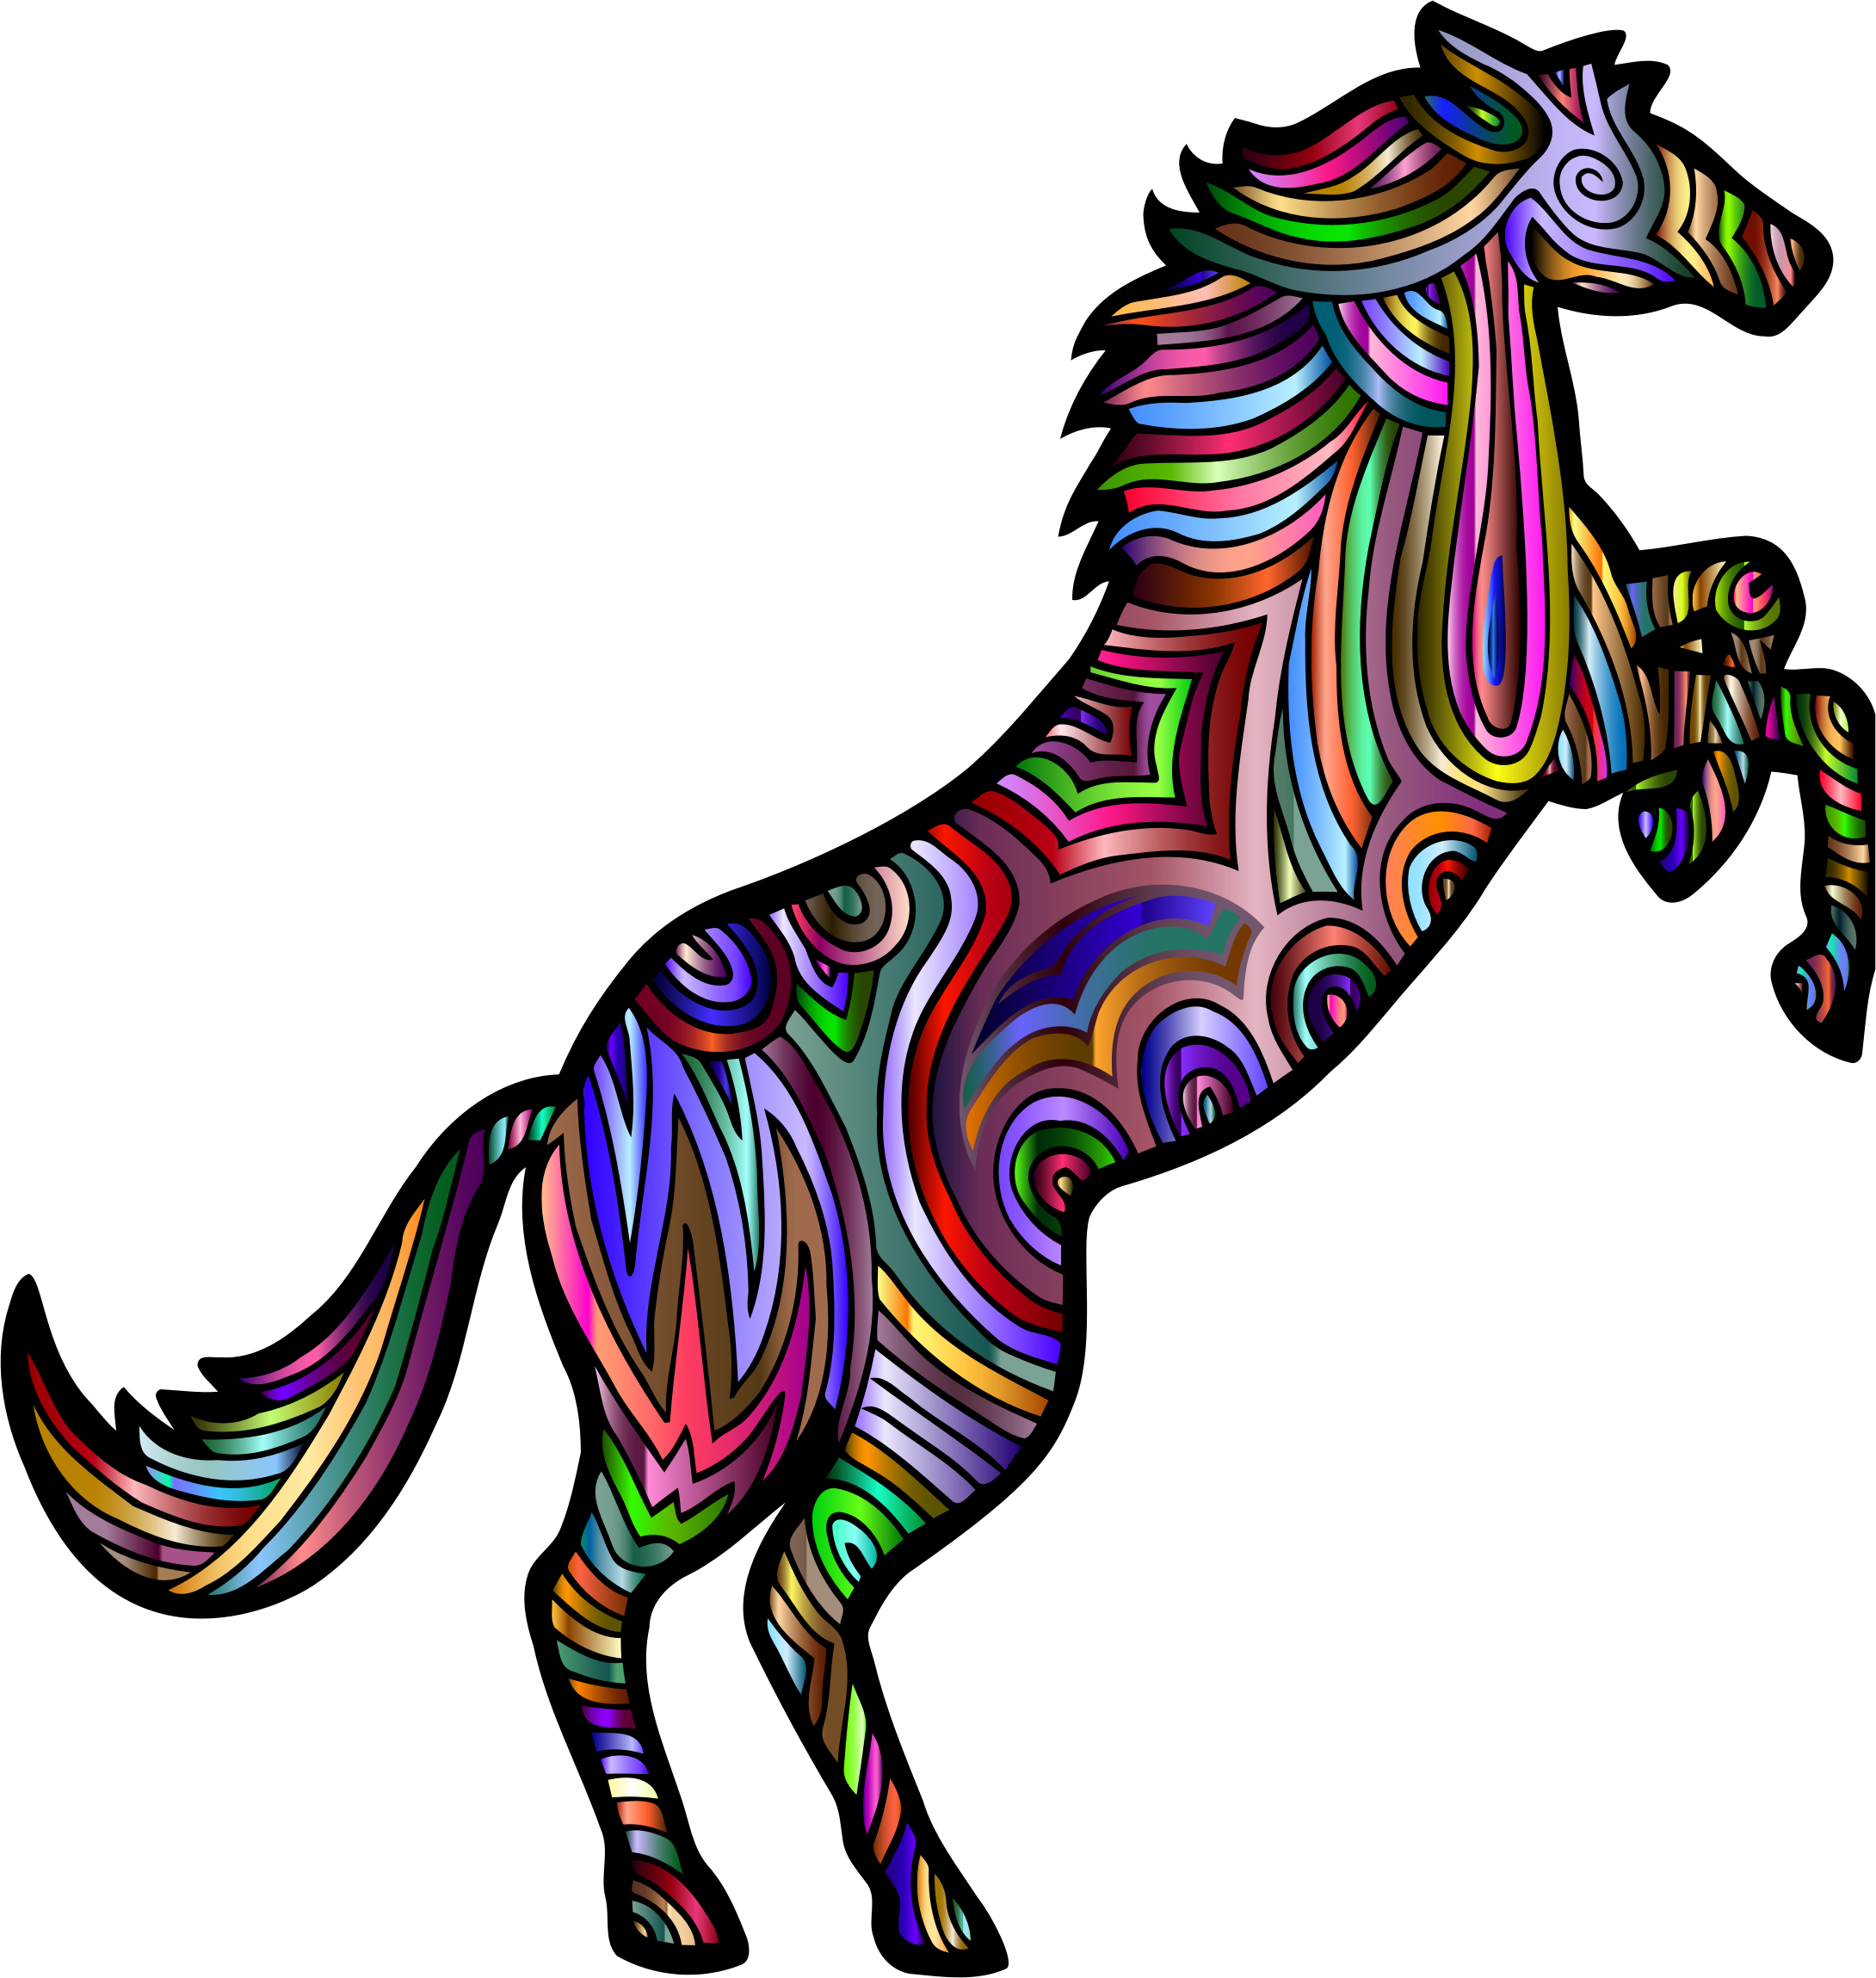 Chromatic Stylized Horse 2 by GDJ